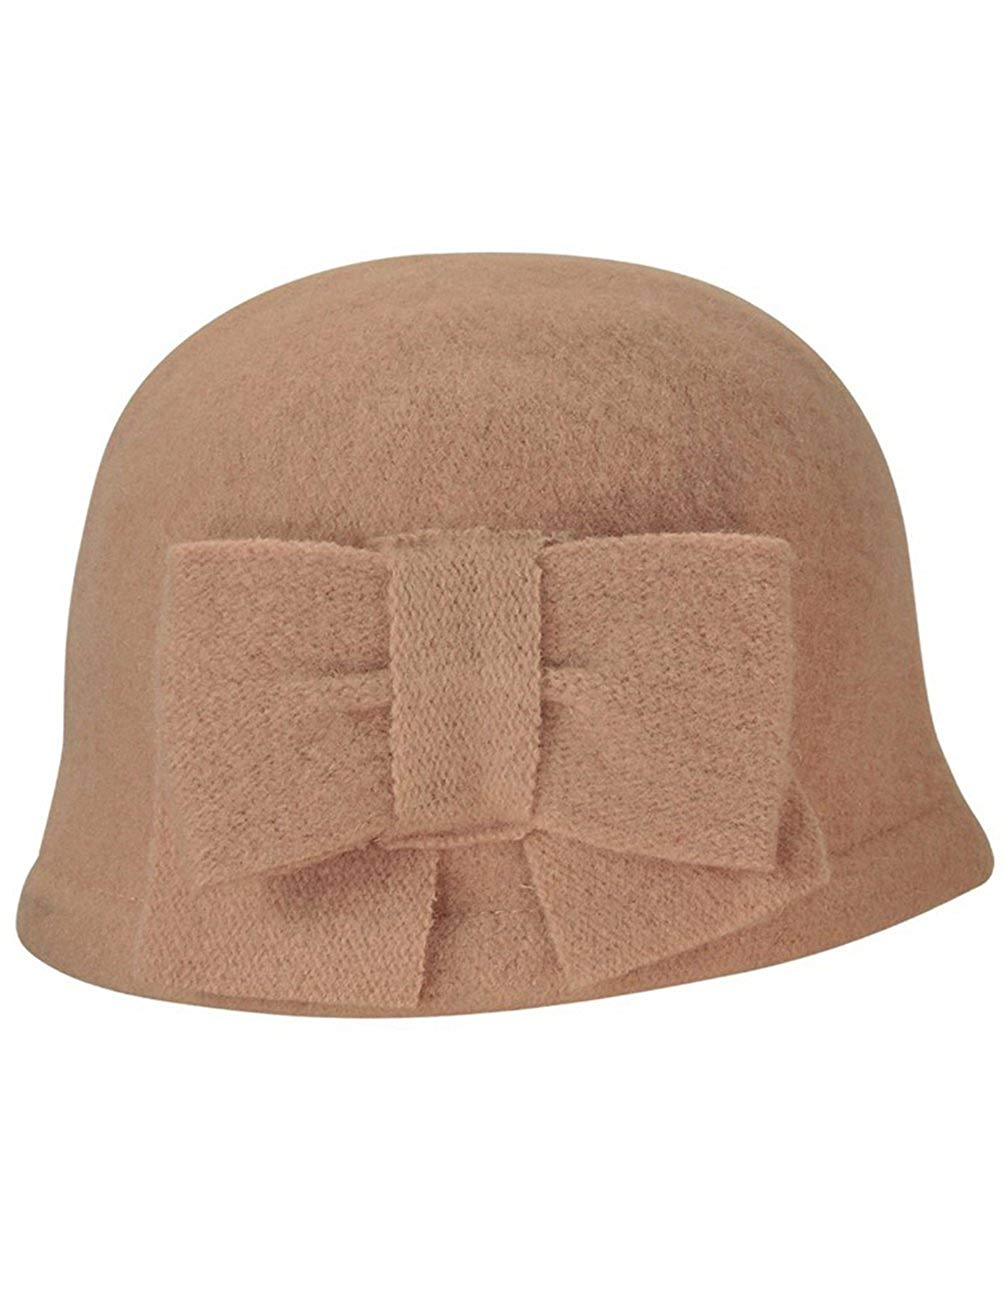 57c34749aa3 Get Quotations · Dahlia Women s Daisy Flower Wool Cloche Bucket Hat